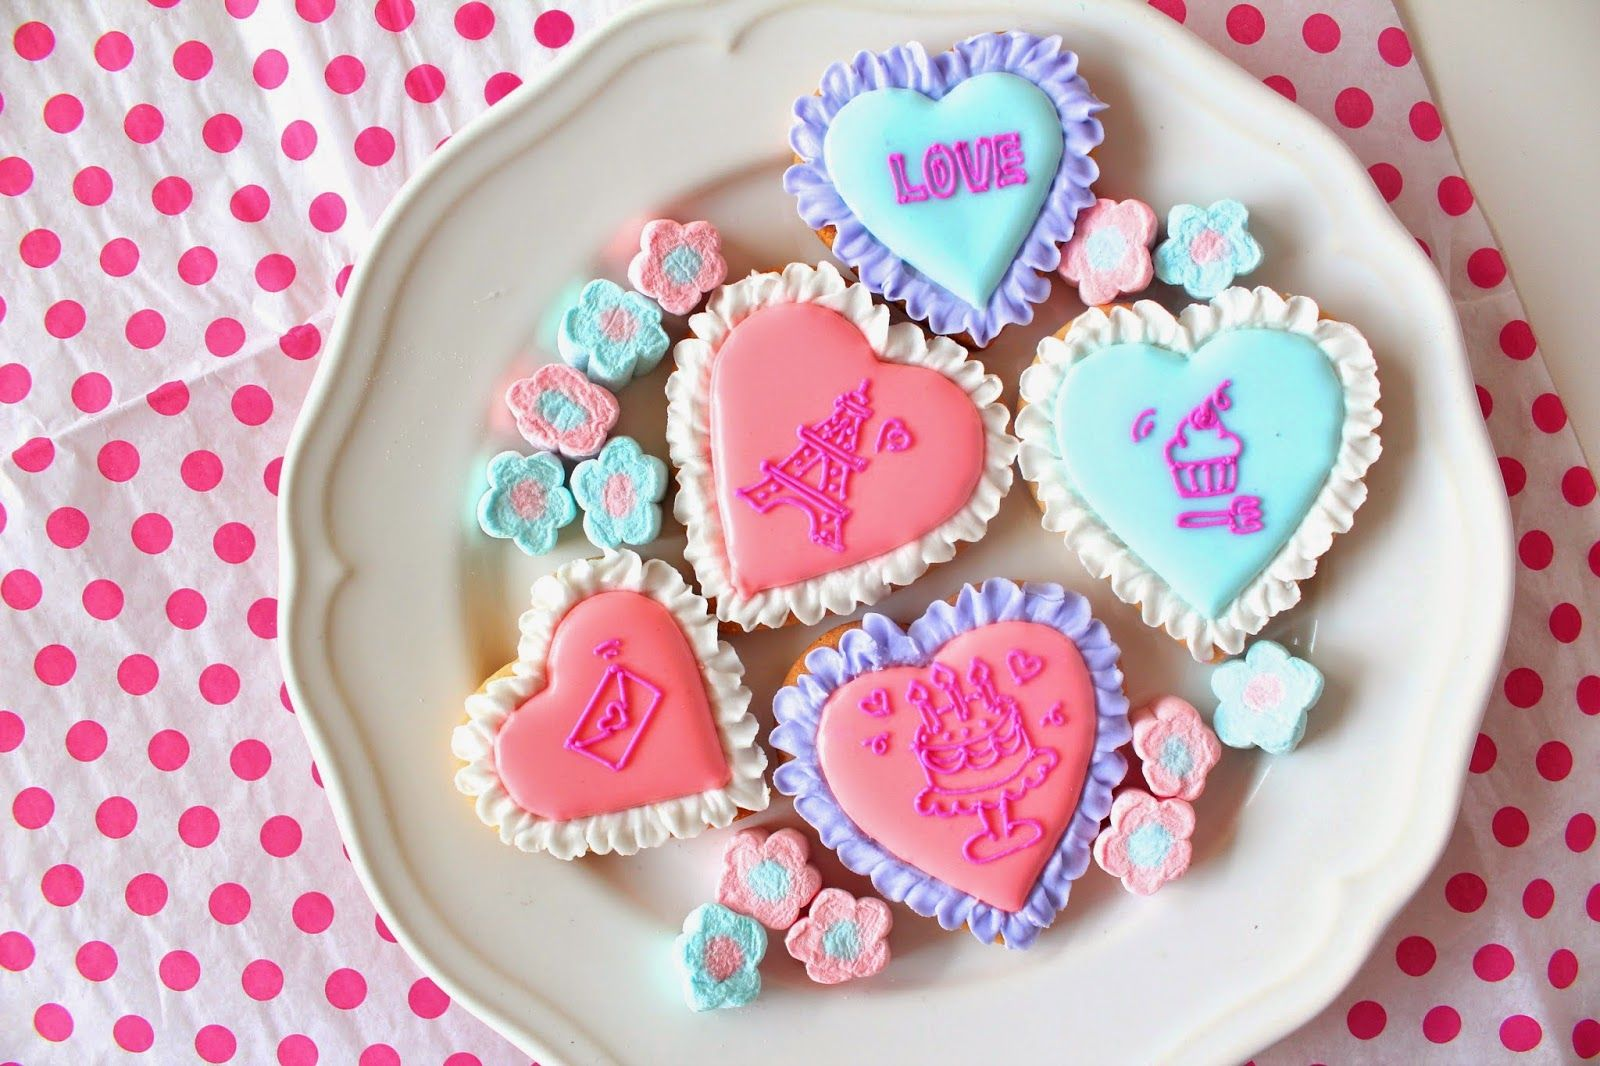 Sweeten your day.: Frill heart icing cookies フリルハートのアイシングクッキー